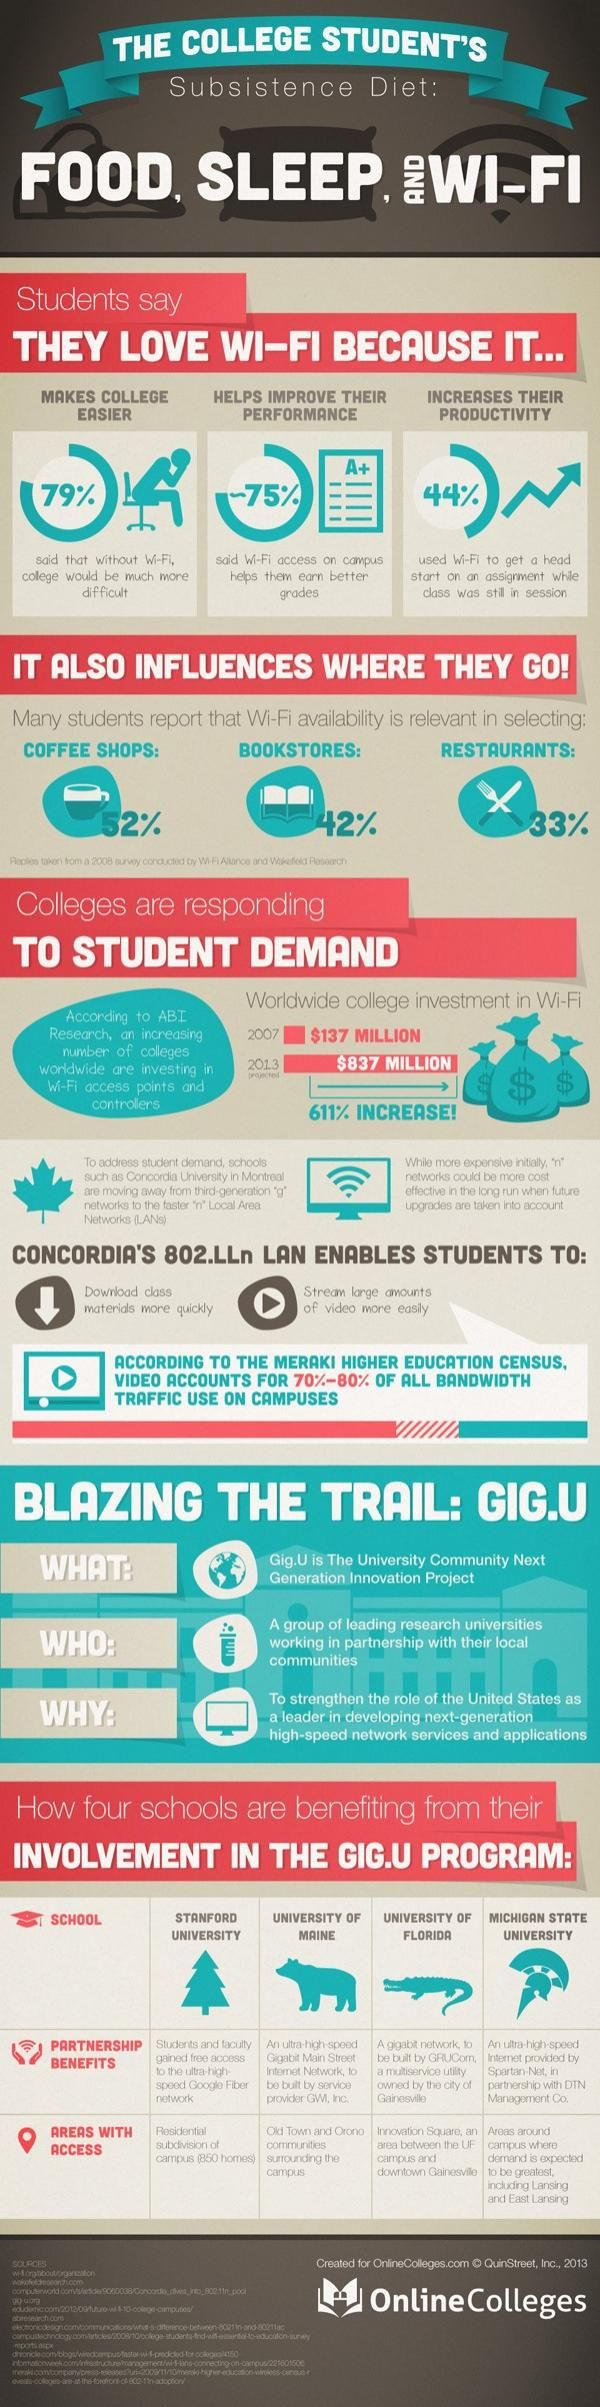 Importance of internet to students